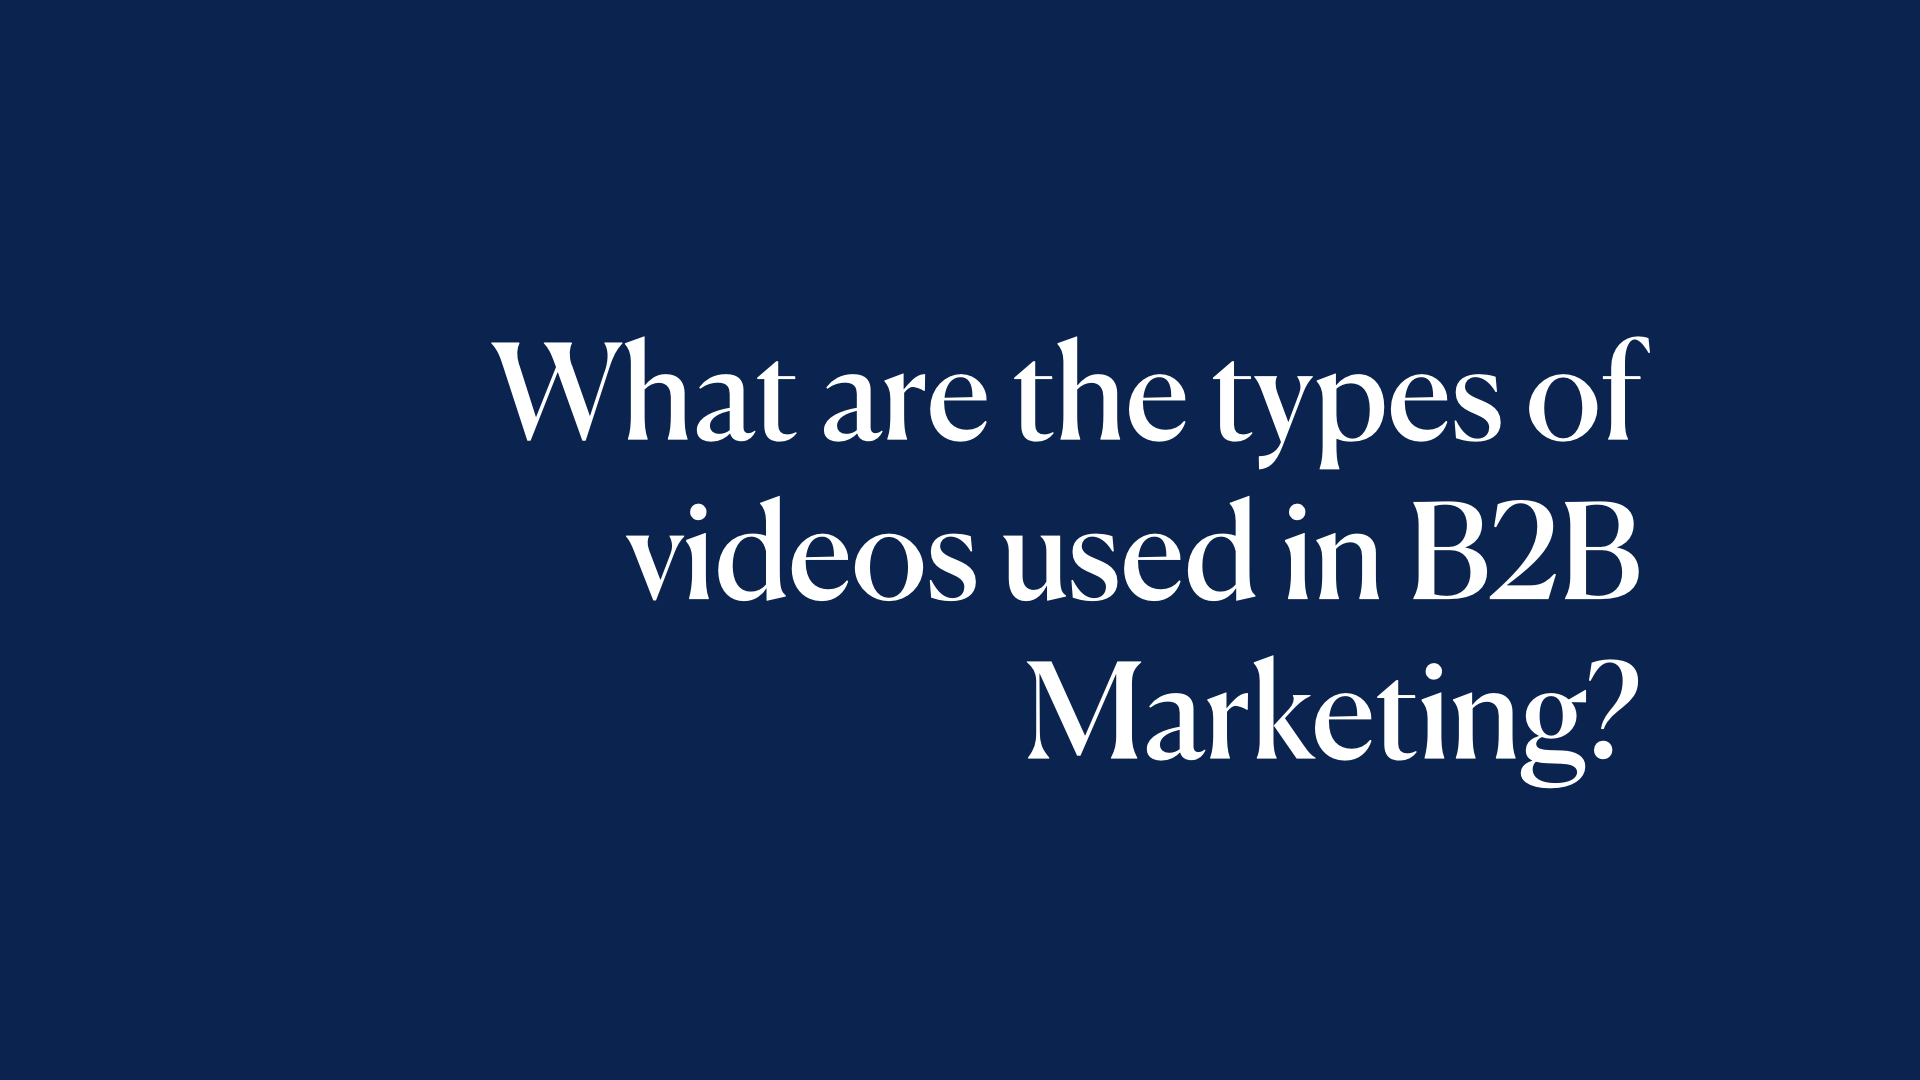 What are the types of videos used in B2B Marketing?